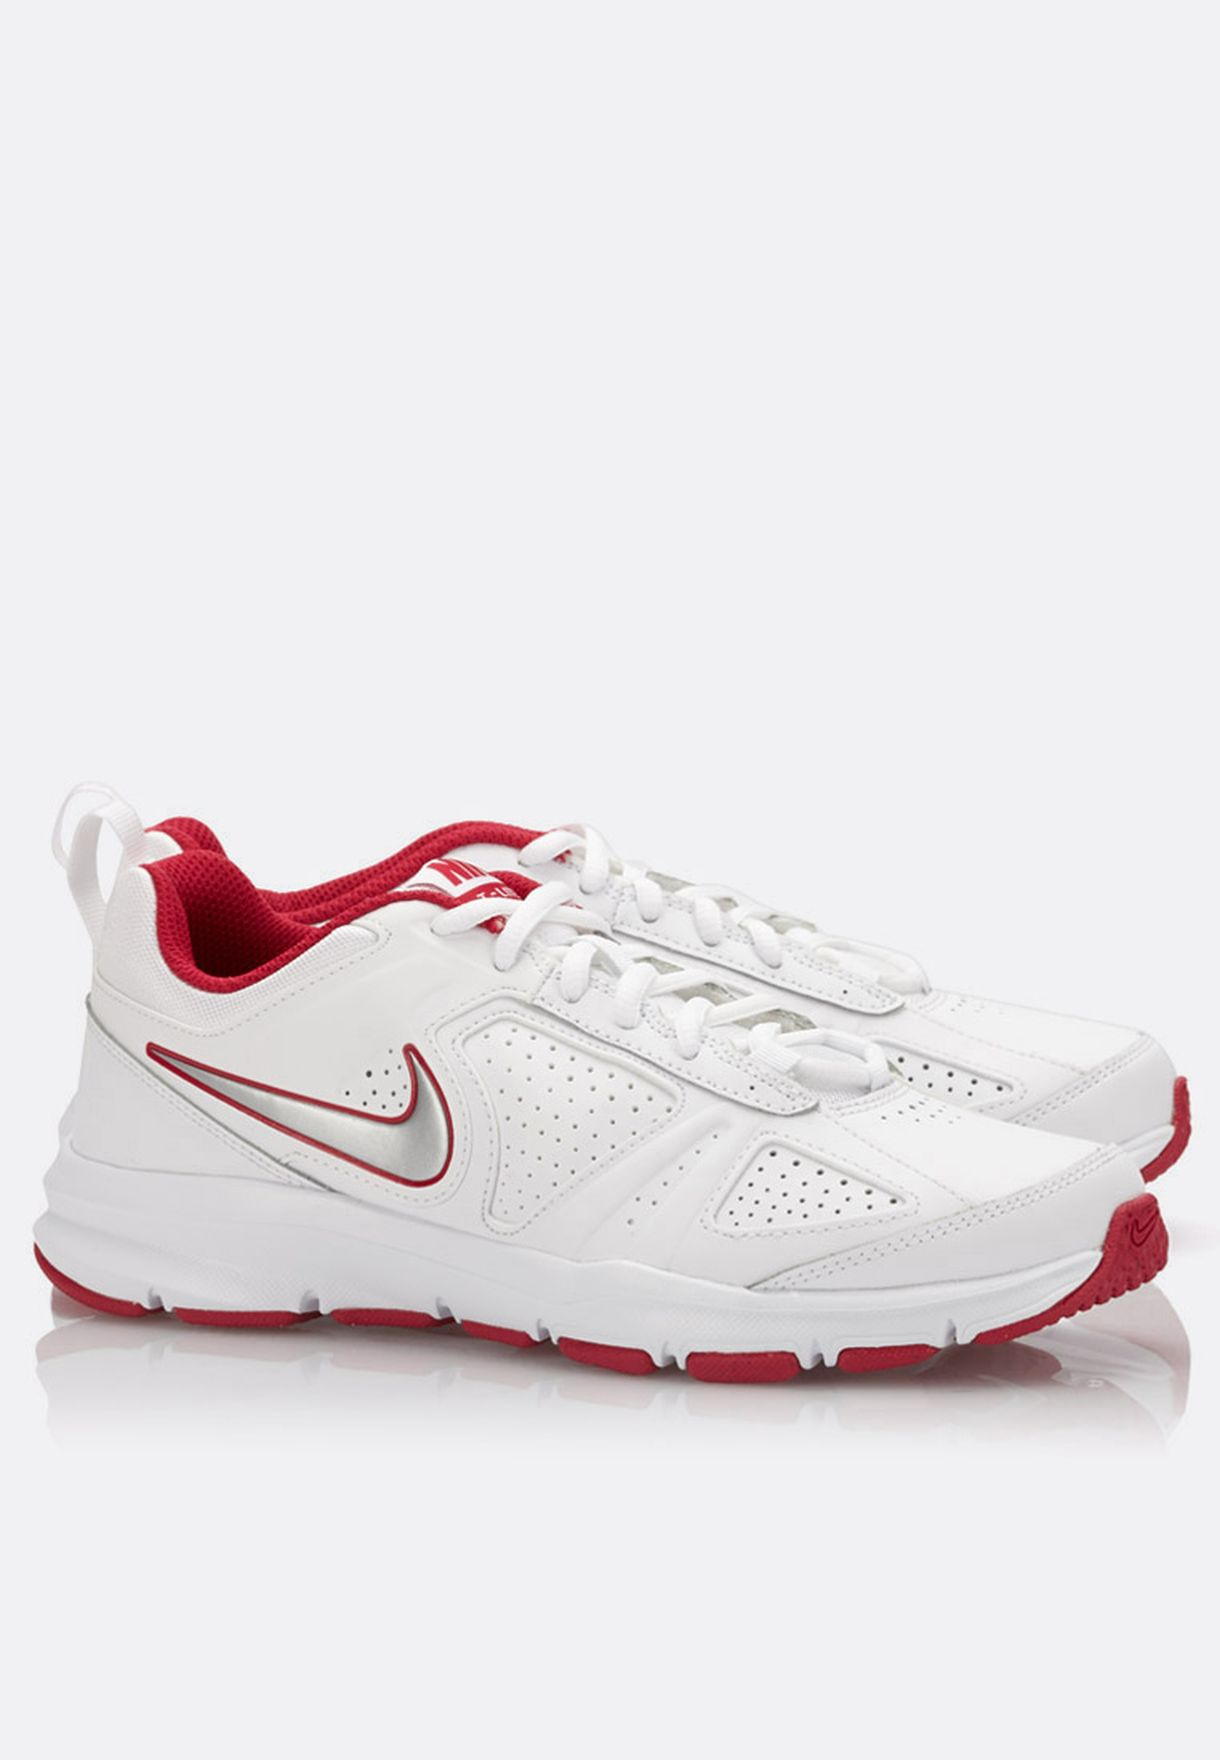 Nike T Lite Xi Women's White Outlet Online, UP TO 70% OFF